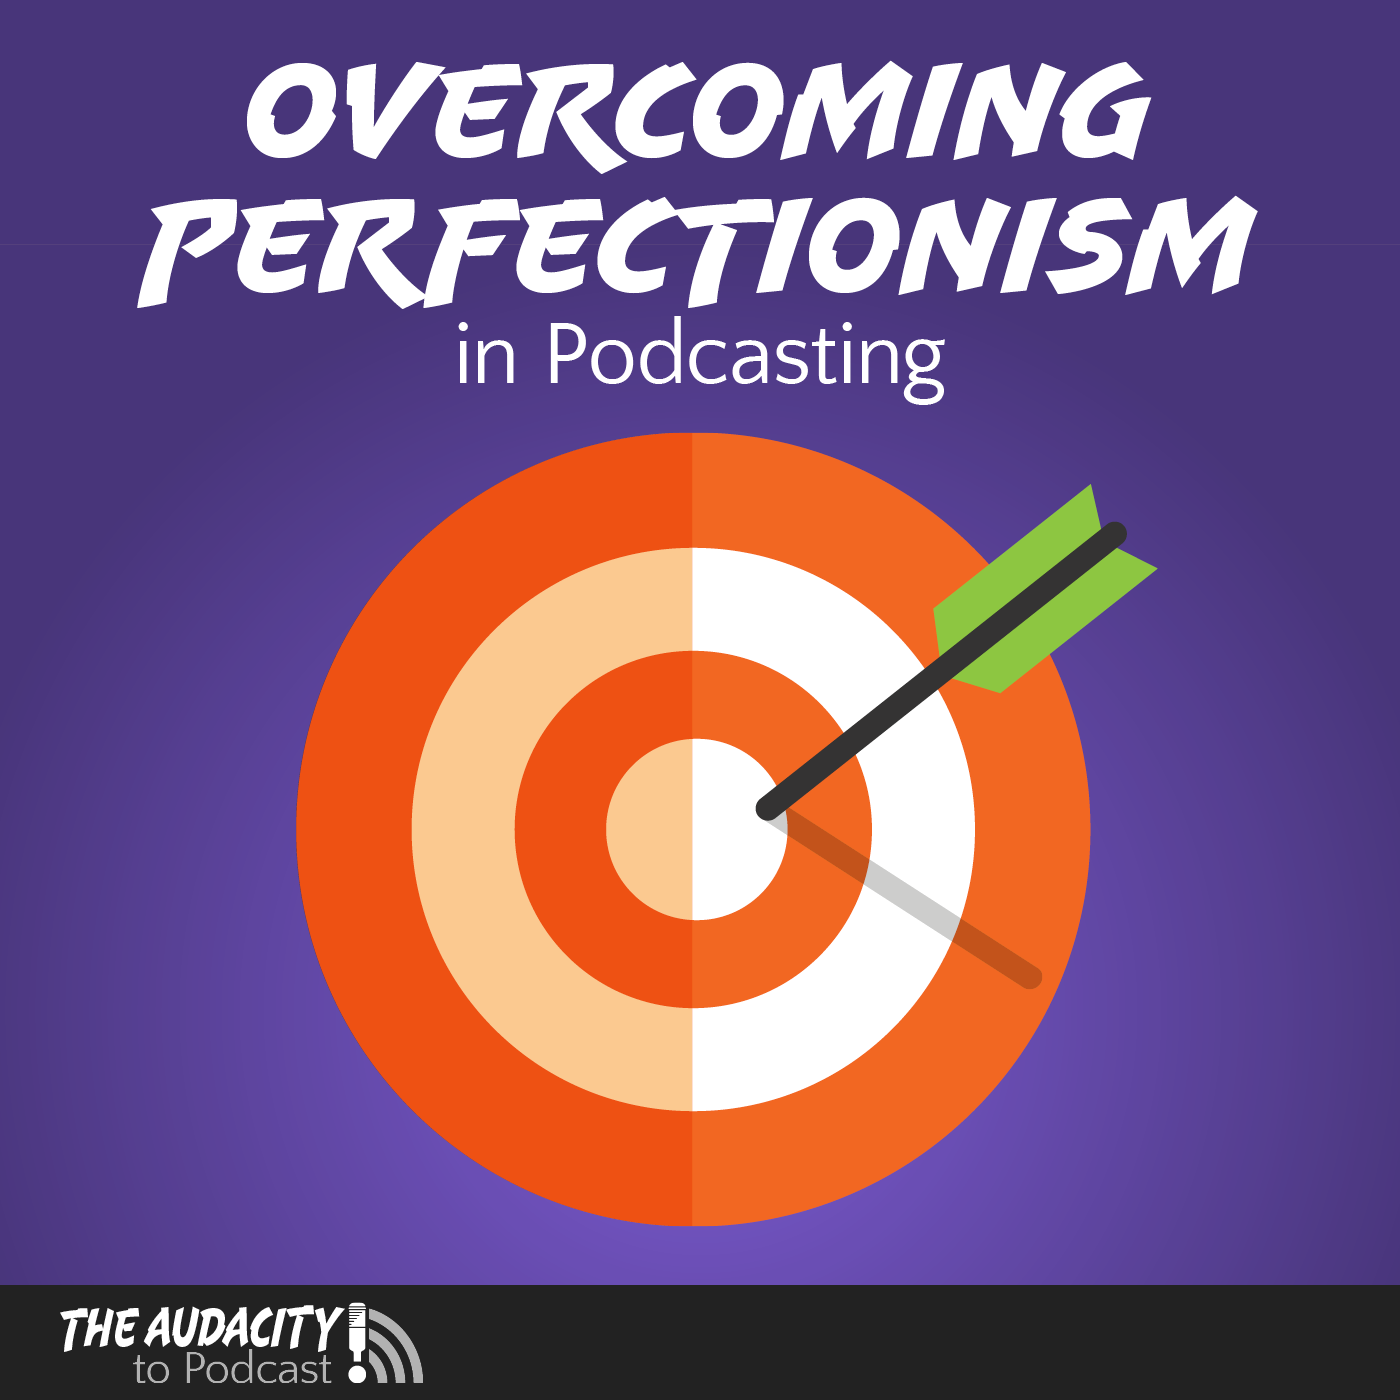 Overcoming Perfectionism in Podcasting